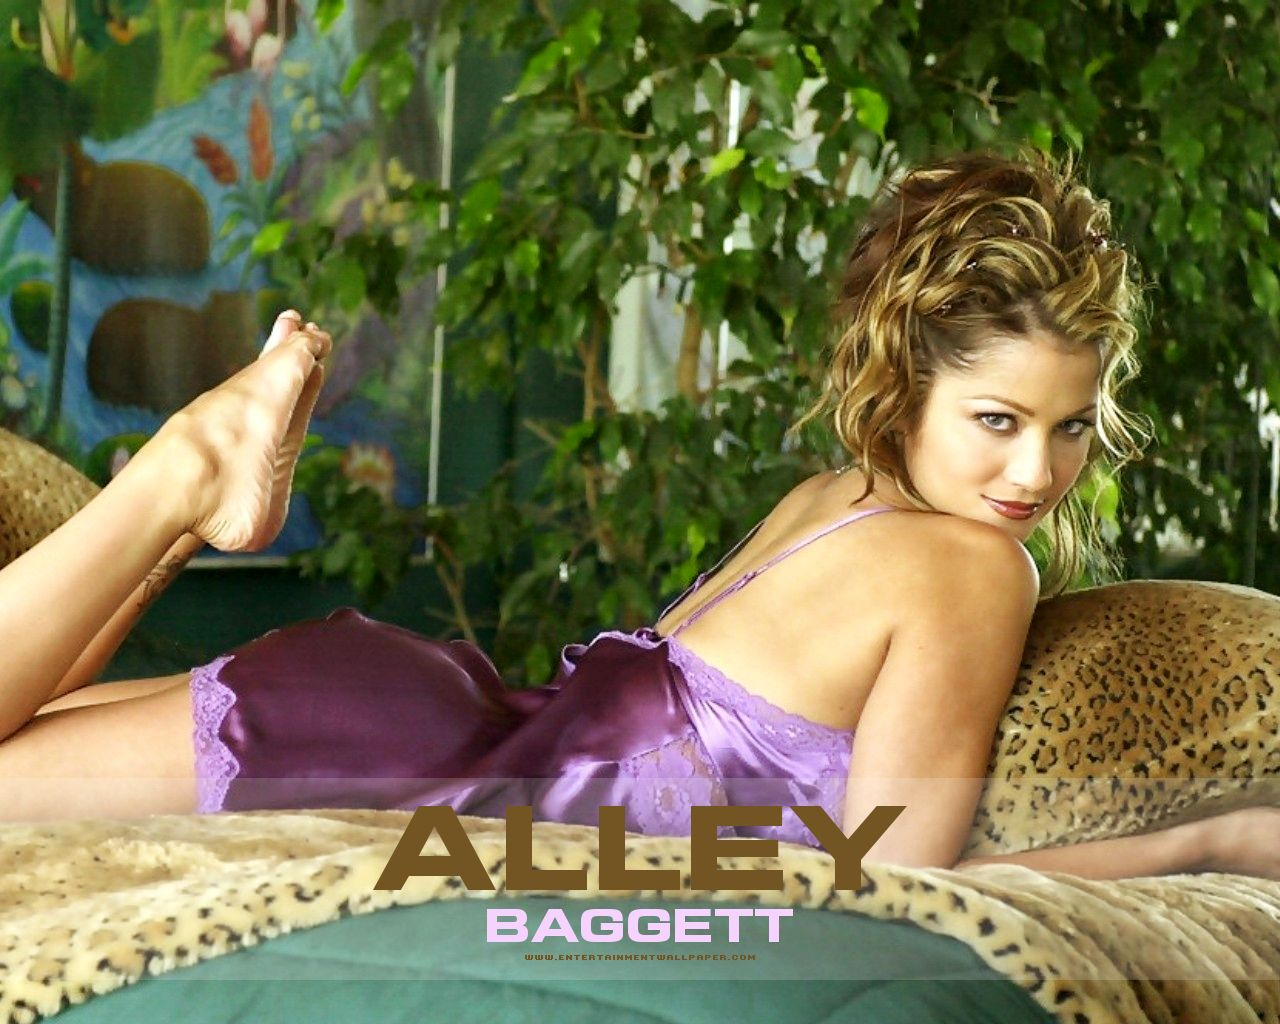 Celebrity Hot Pictures And Wallpapers: Alley Baggett Hot Pictures, Wallpapers, Photos, Images ...